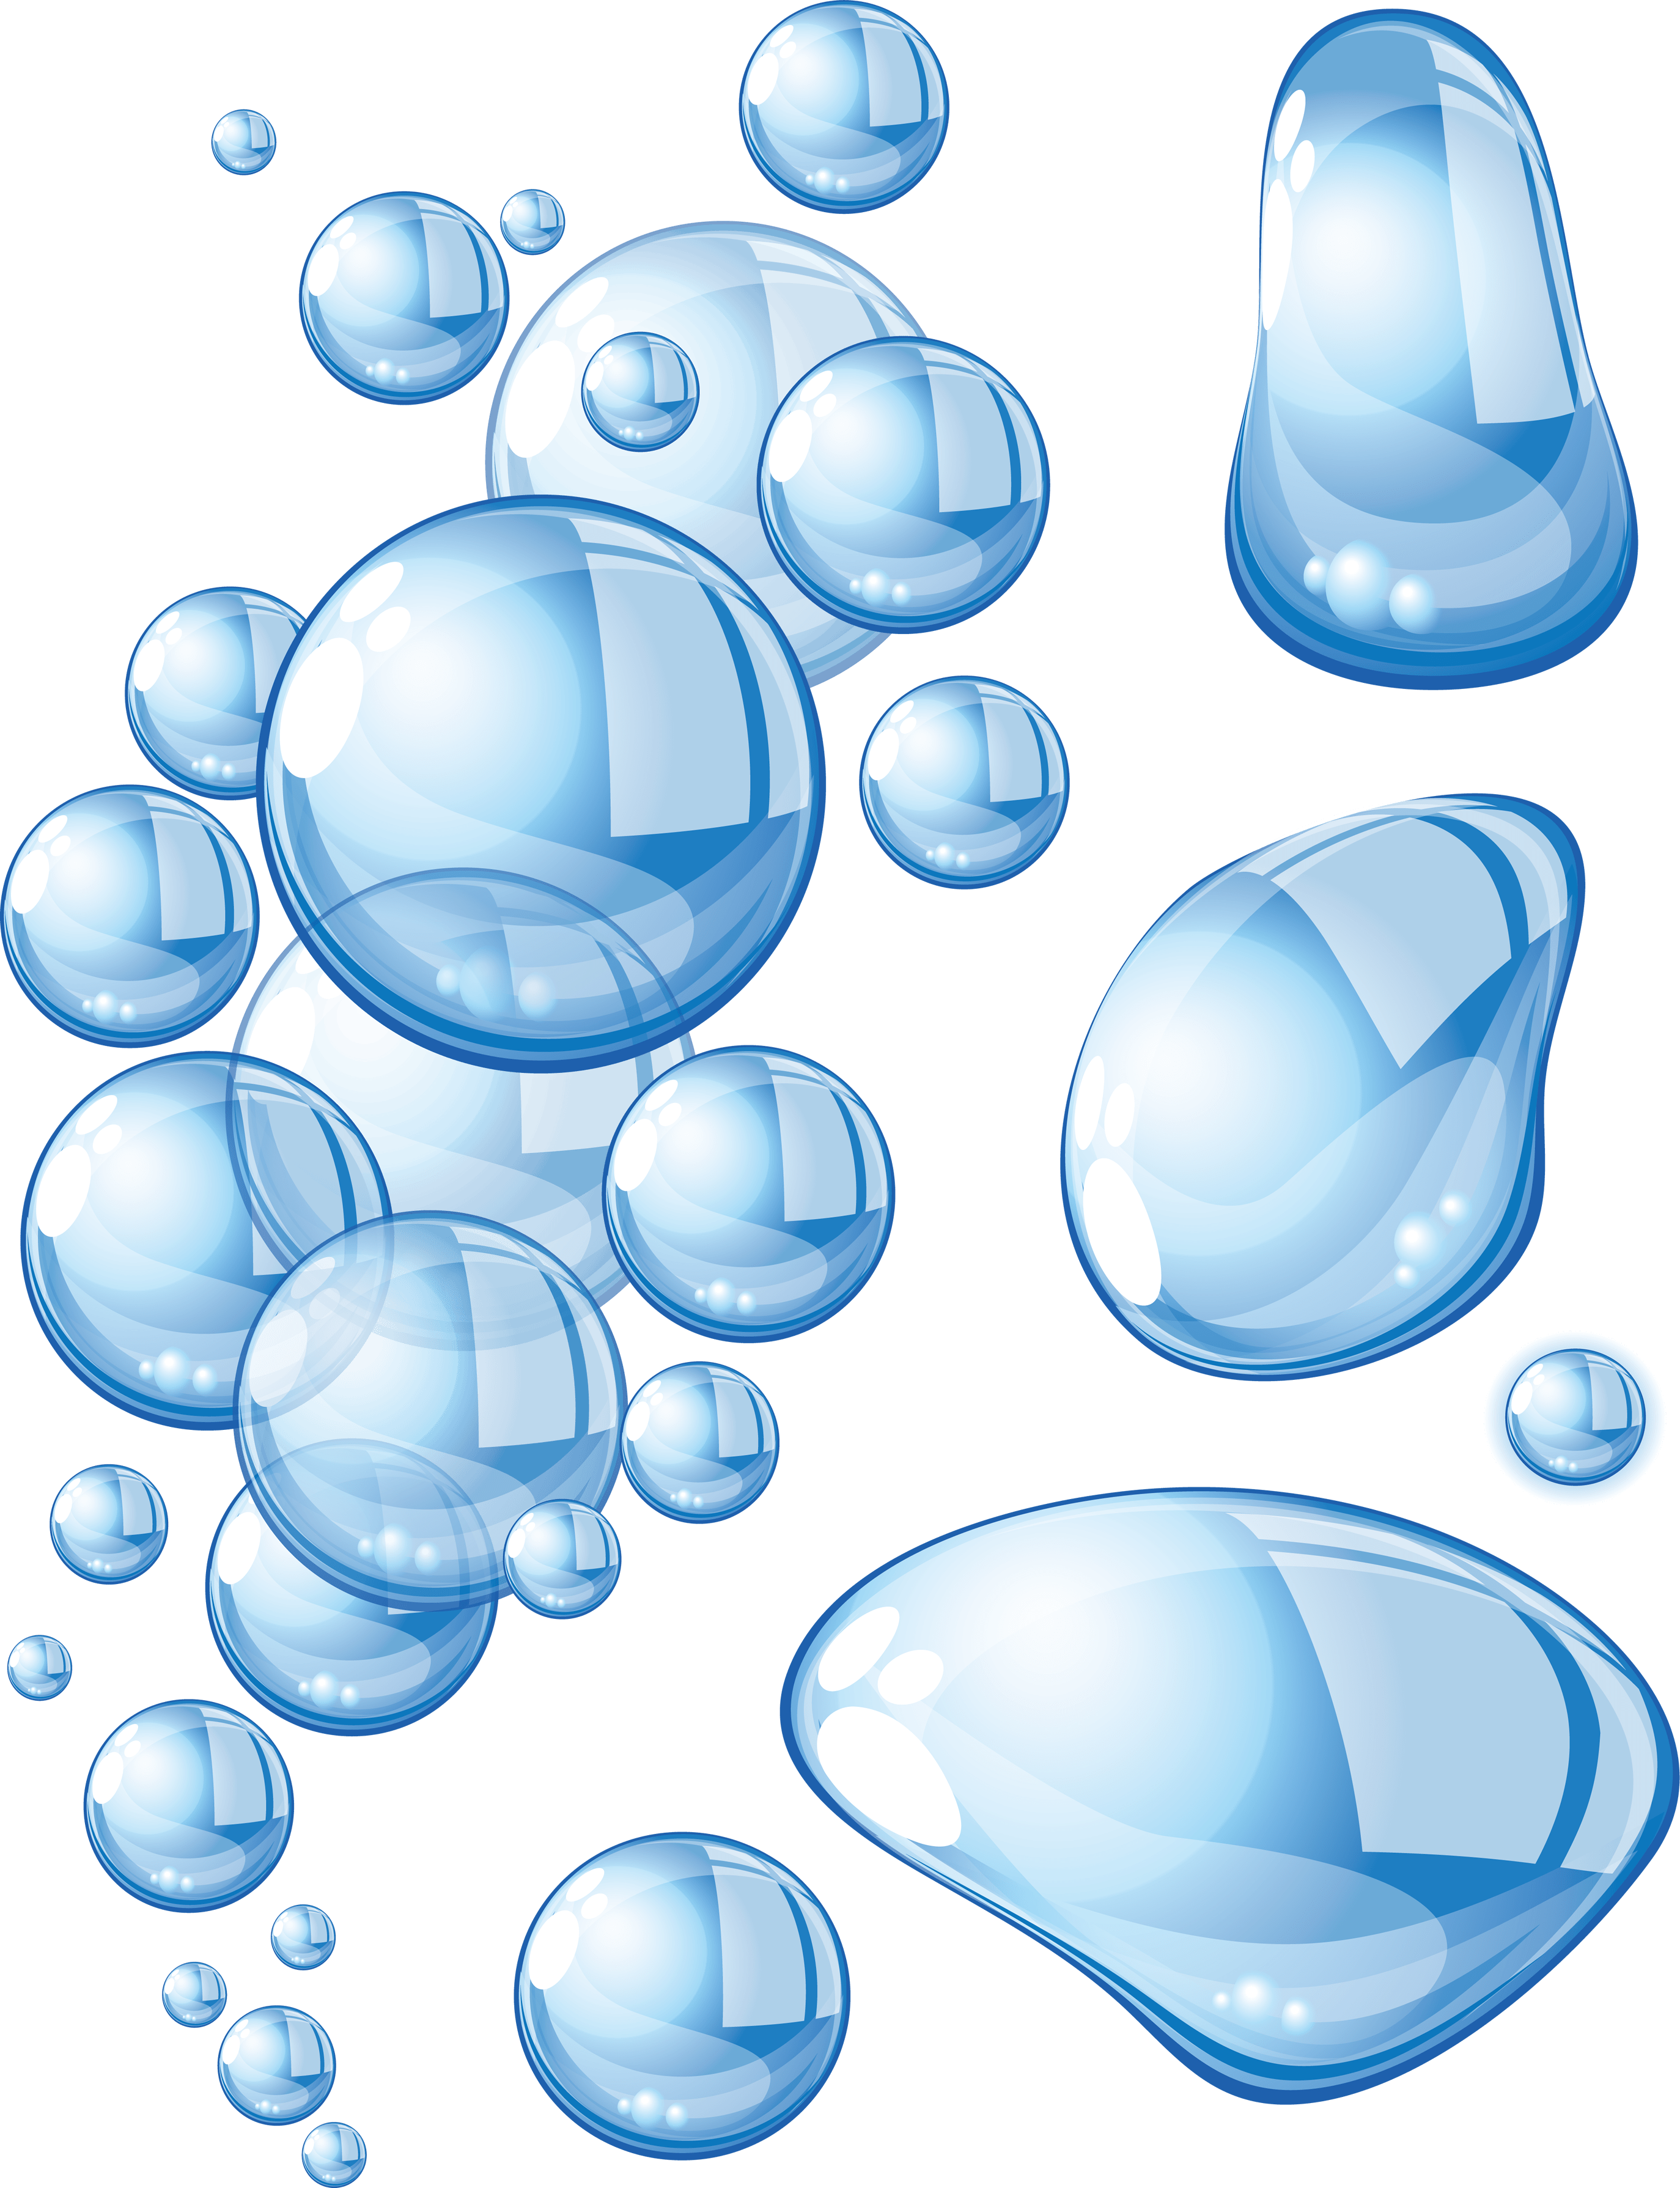 Water bubbles png. Large transparent stickpng download